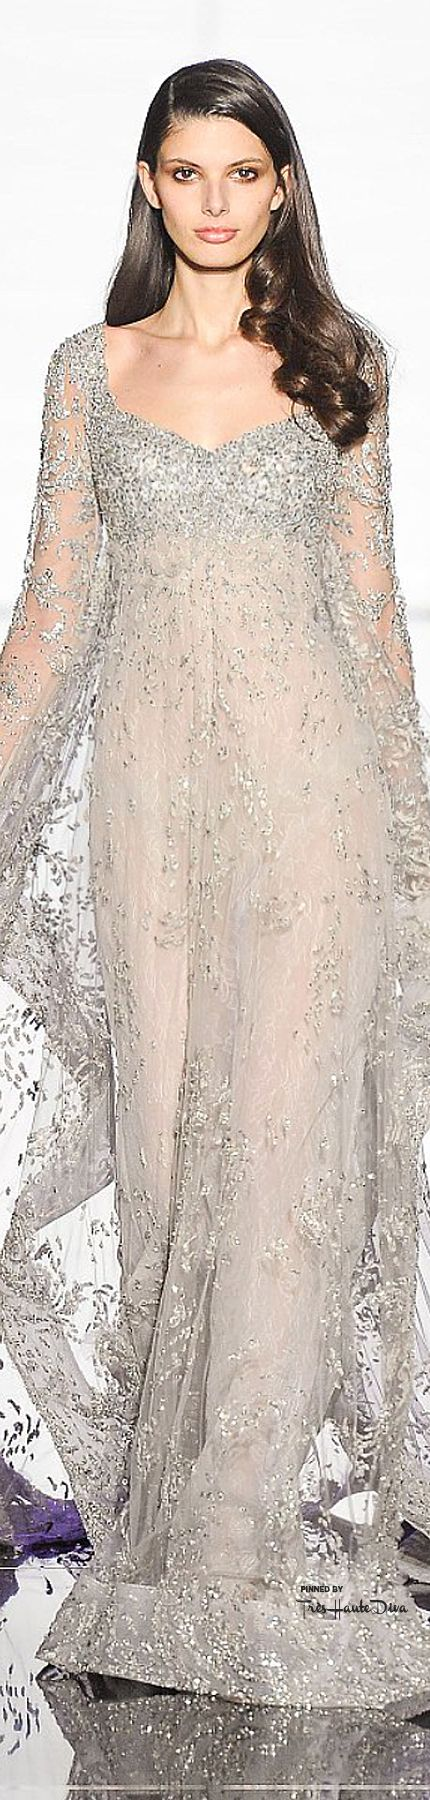 Zuhair Murad Spring 2015 Couture ♔THD♔This is a magical gown!  How I would love to wear something like this!